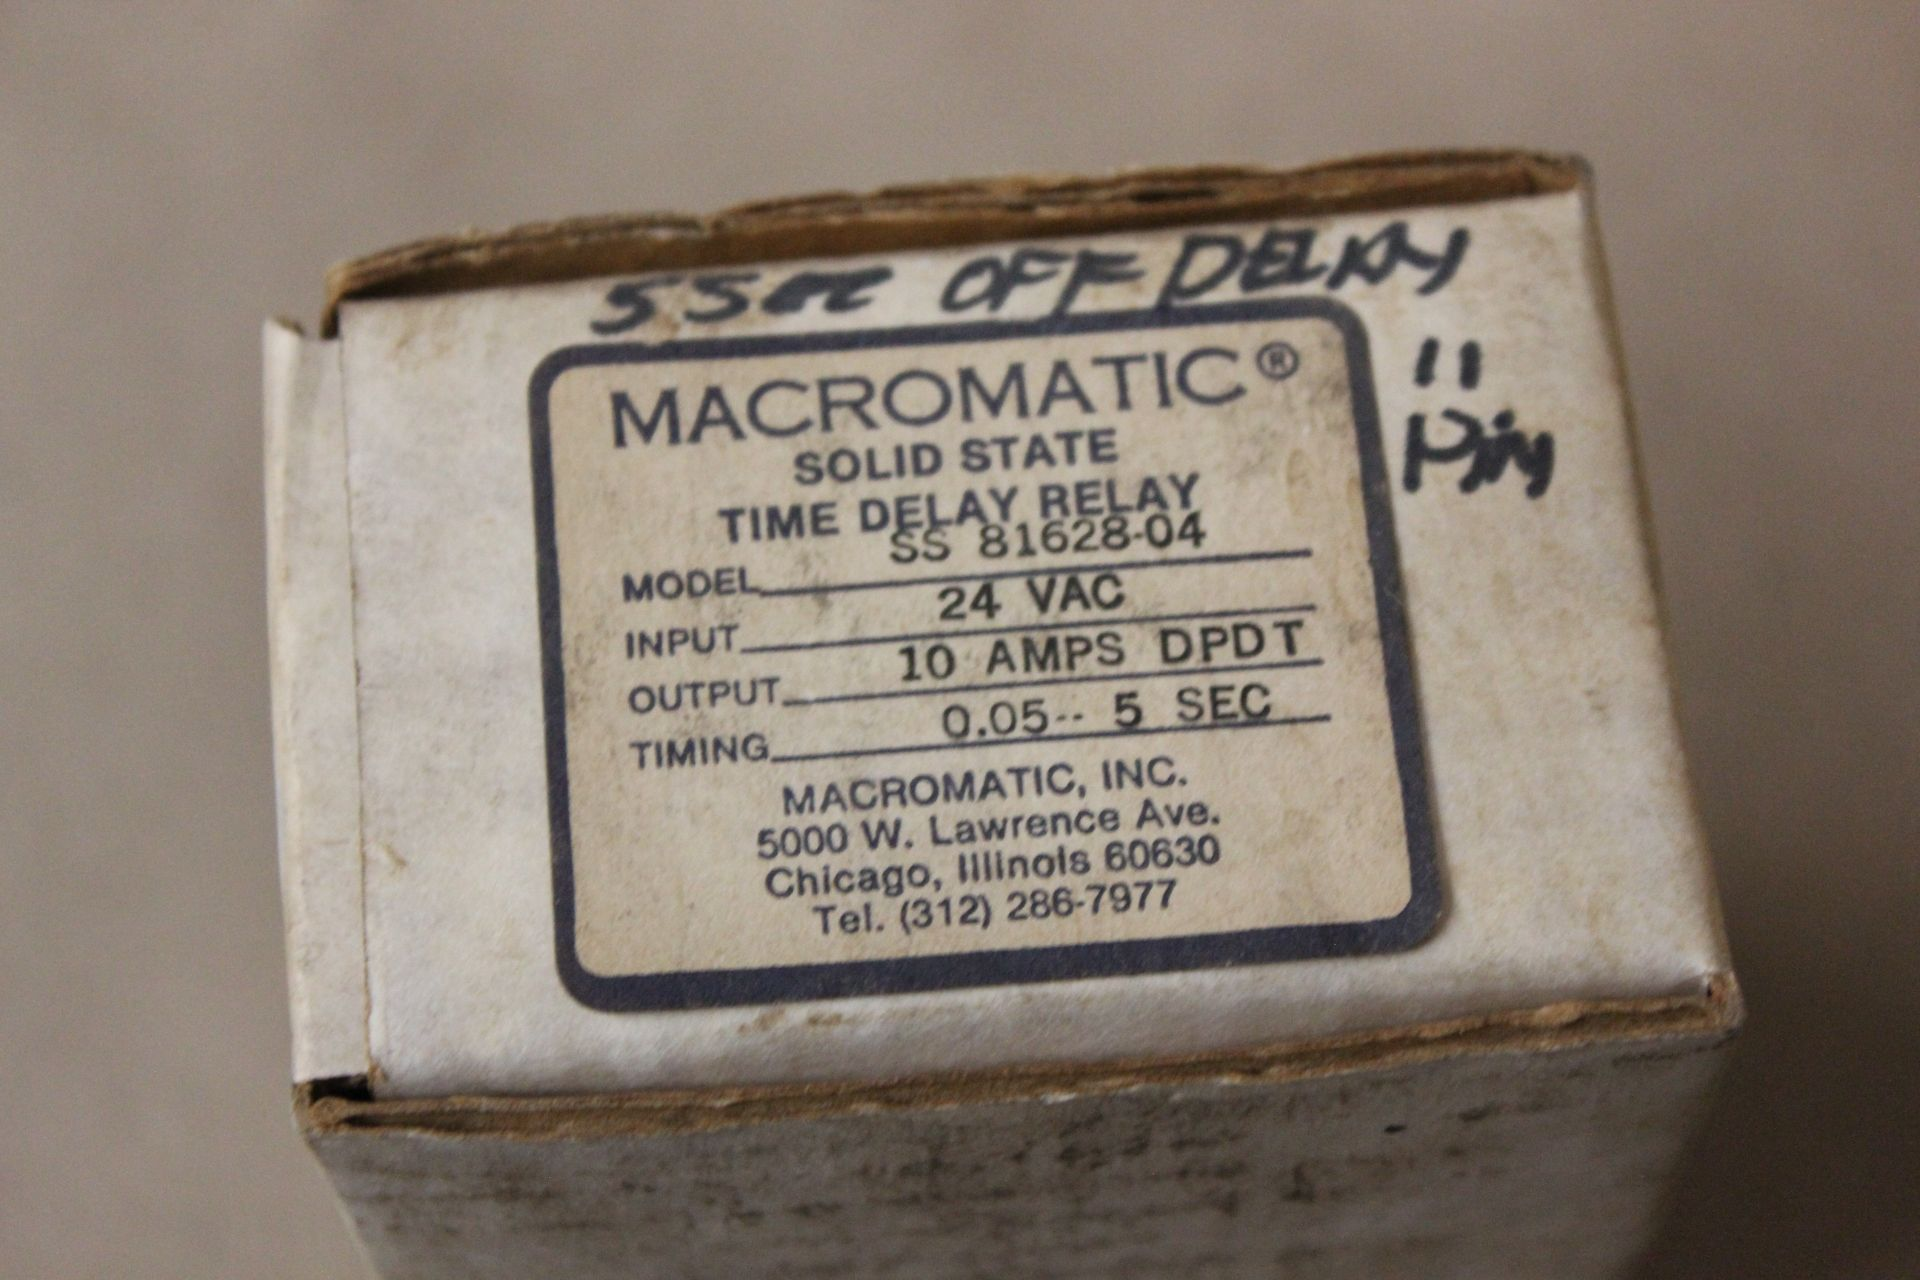 NEW MACROMATIC SOLID STATE TIME DELAY RELAY - Image 2 of 3